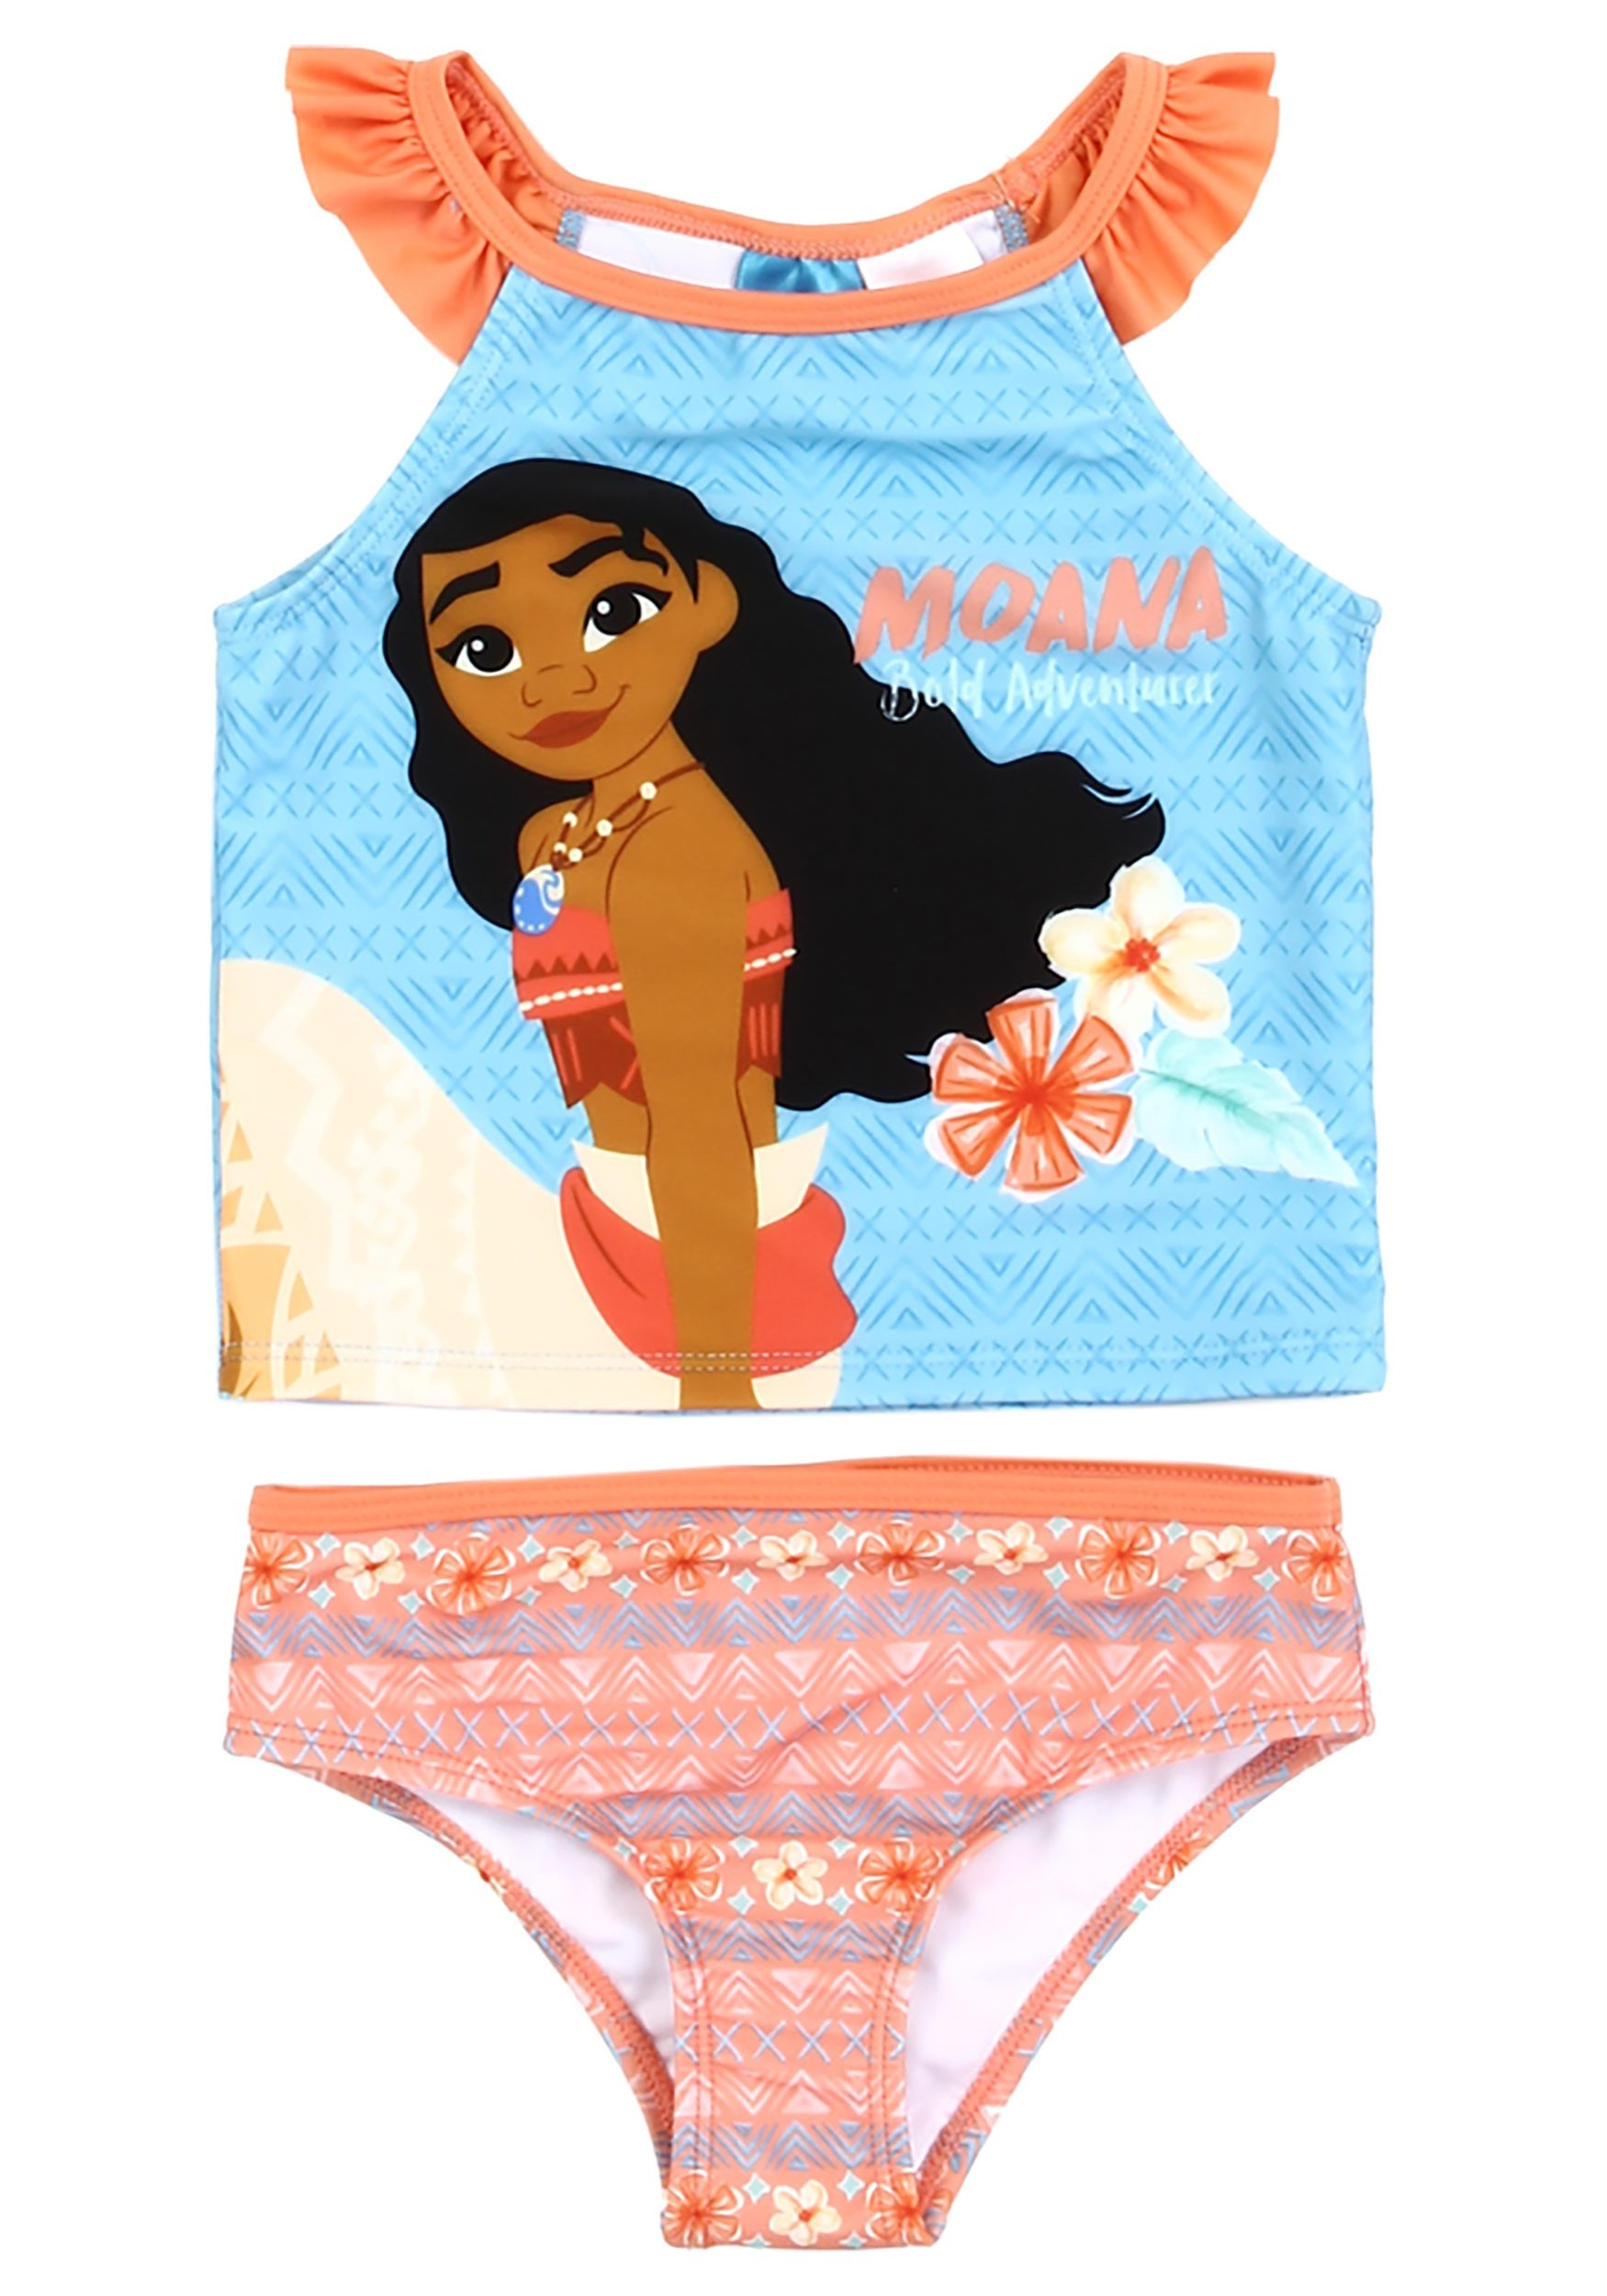 dd02466d1f310 Disney Moana Two Piece Toddler Girl's Swimsuit